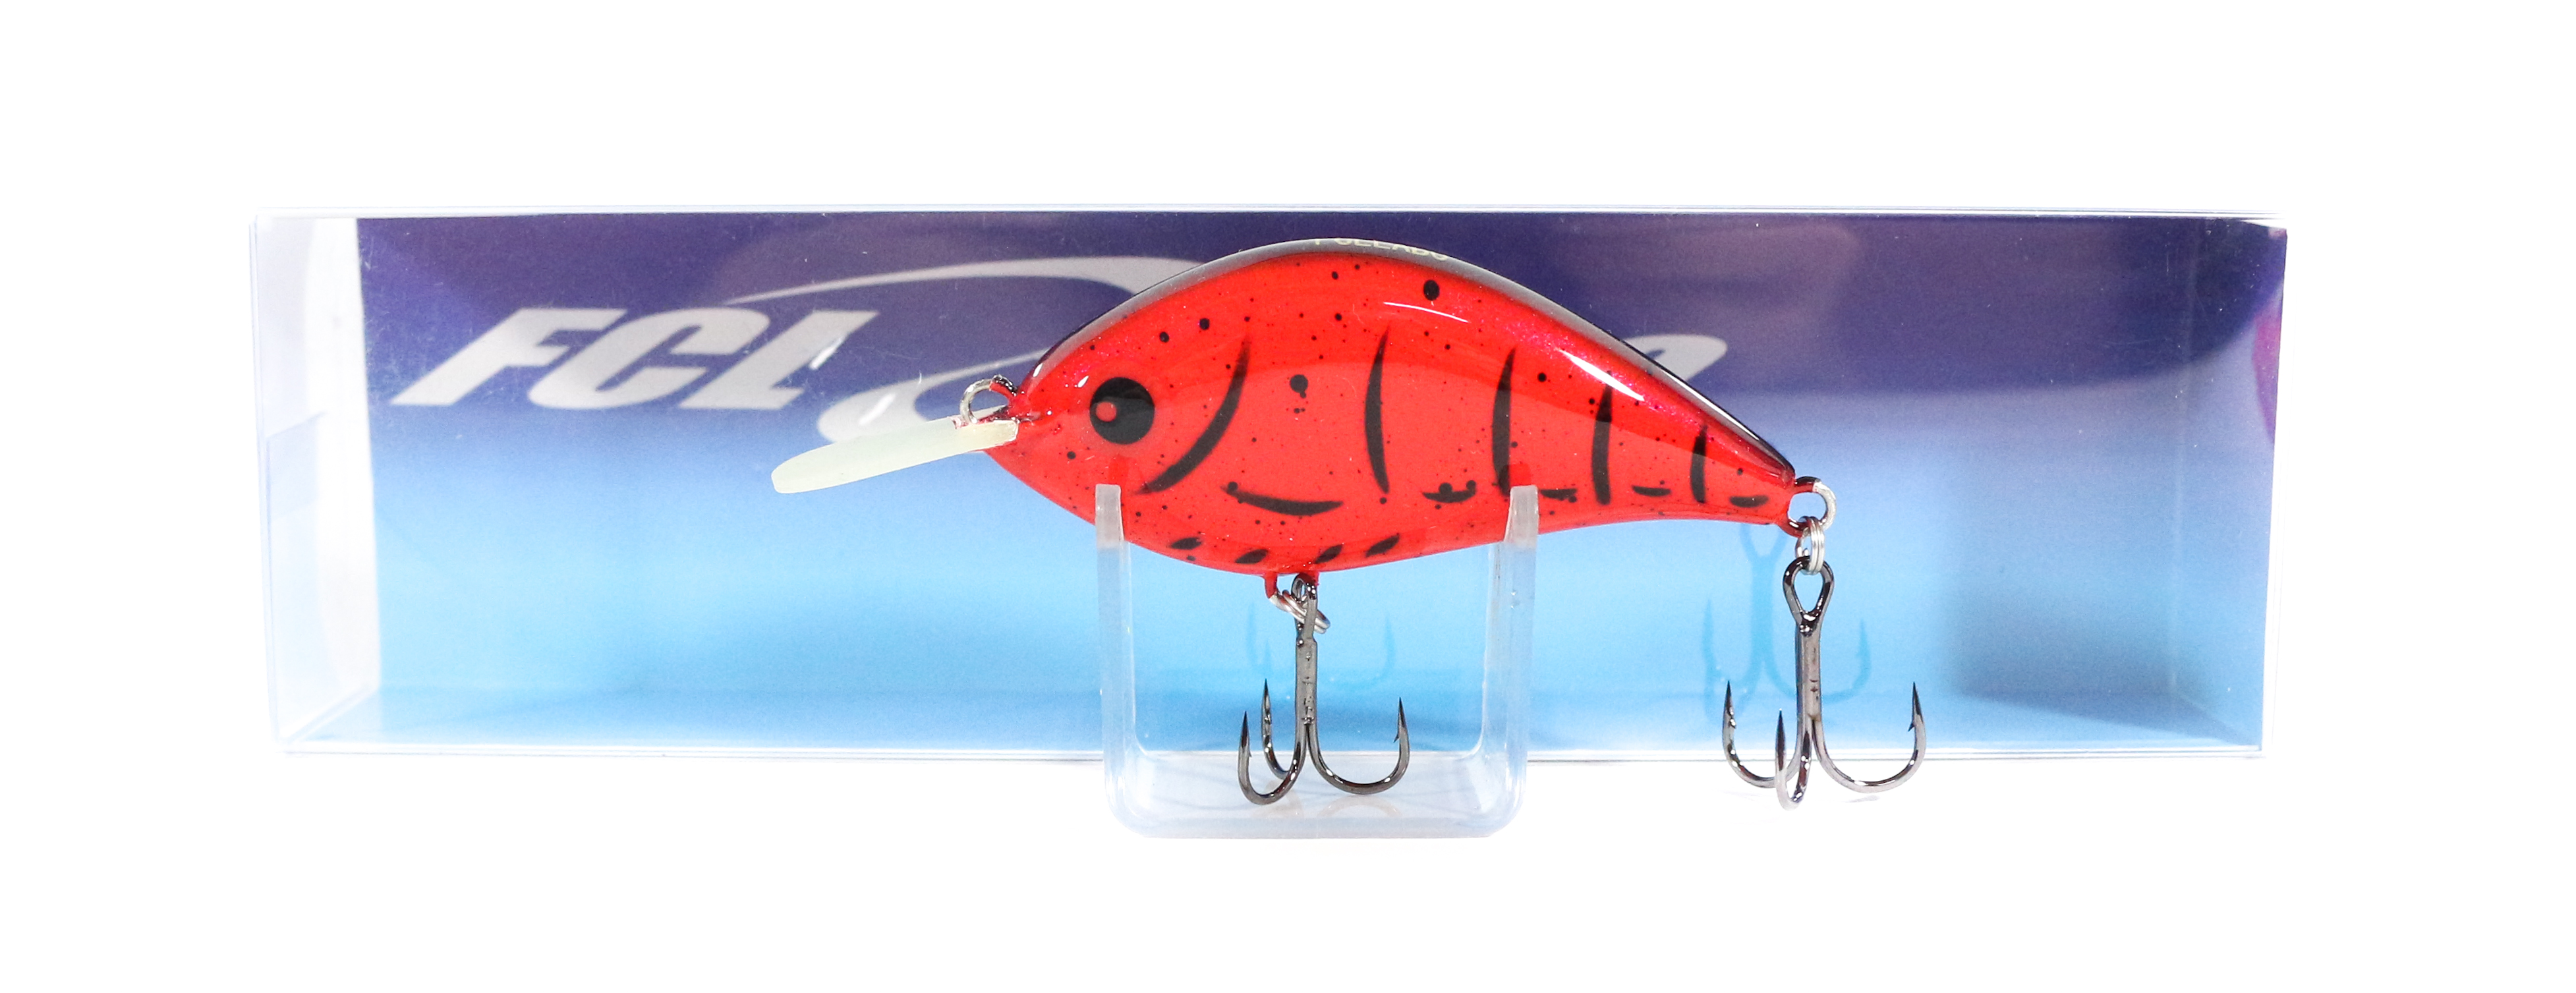 FCL Labo Lure TKC 60 Floating Lure RC (3900)